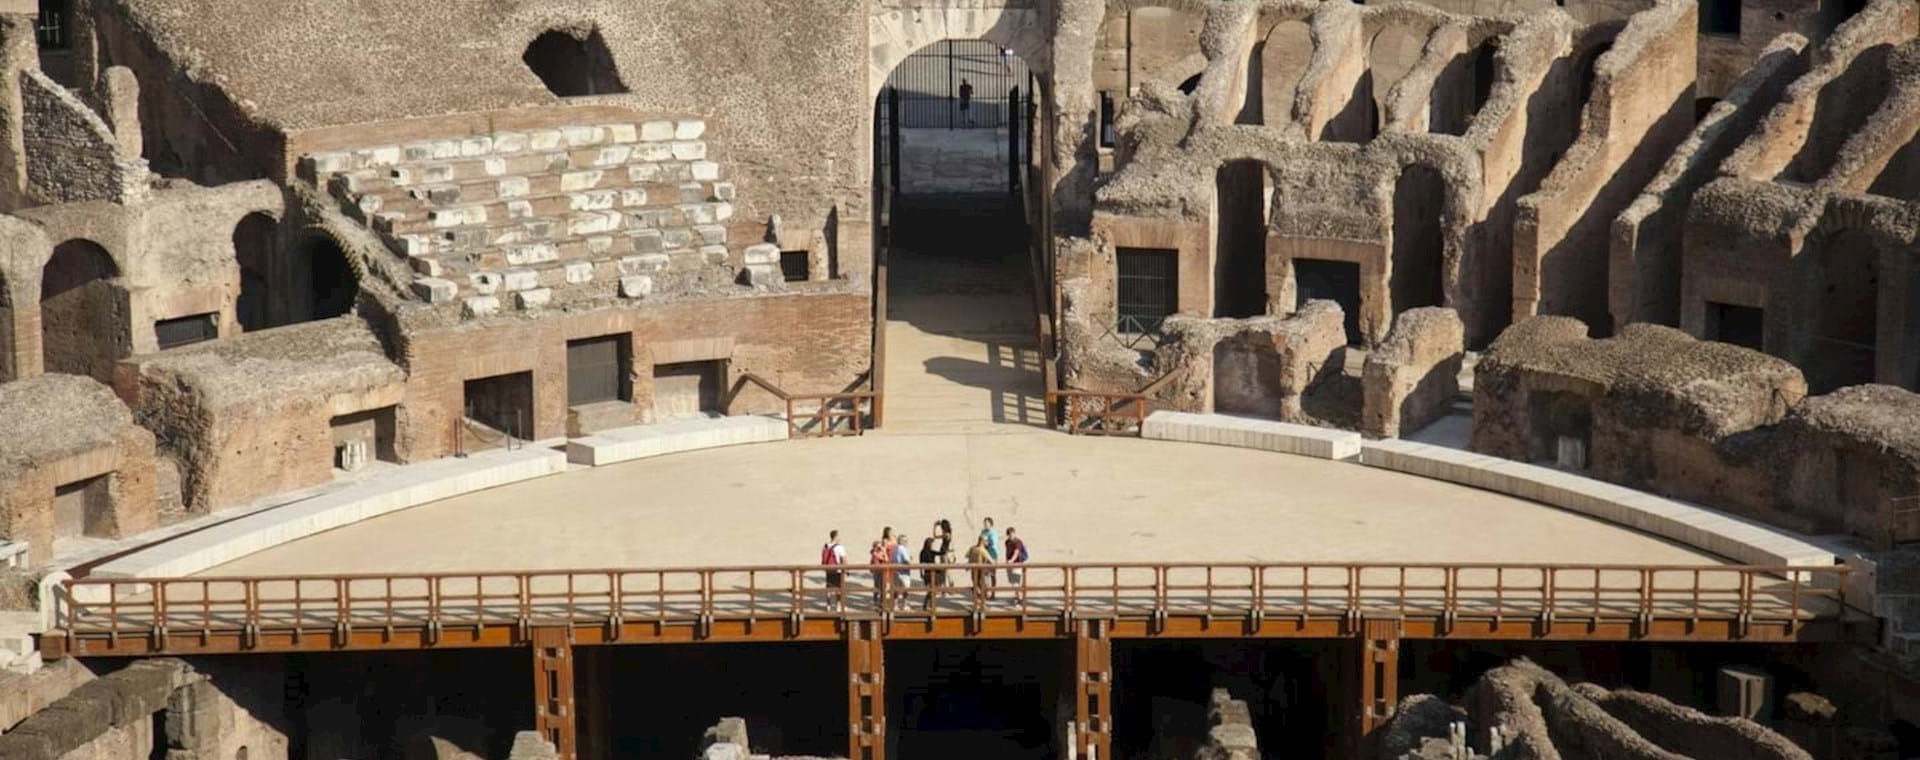 Gladiator's Gate Colosseum Tour with Special Access to the Arena Floor